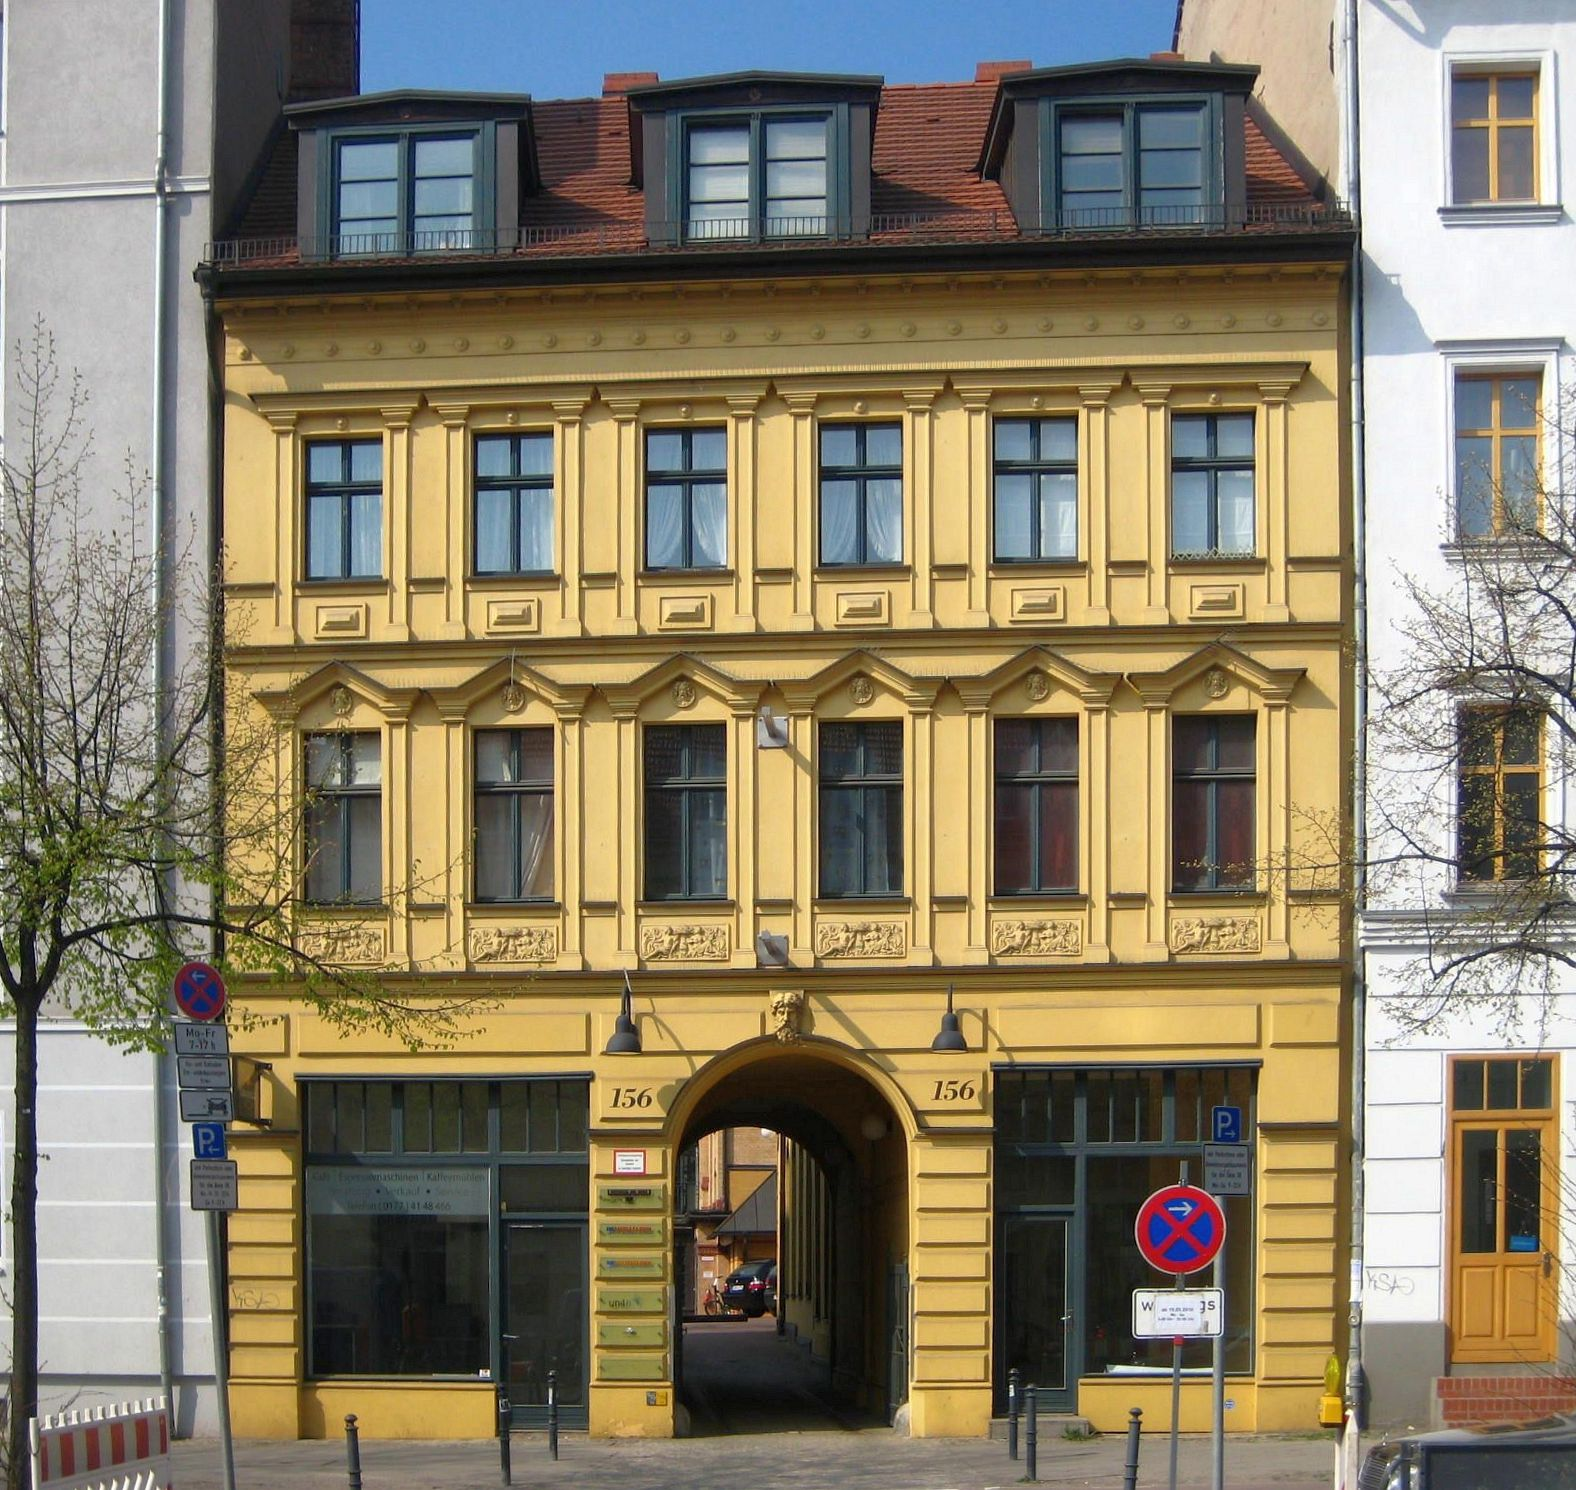 datei berlin mitte brunnenstrasse 156 wikipedia. Black Bedroom Furniture Sets. Home Design Ideas